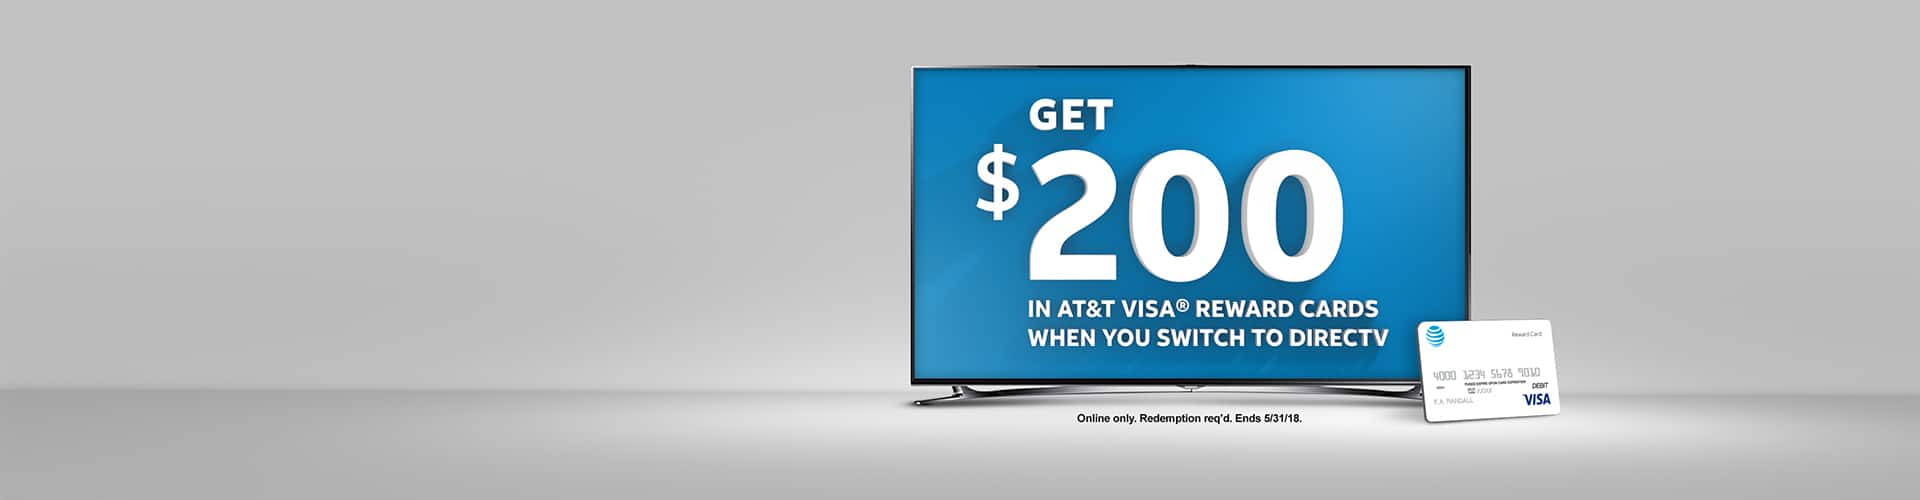 Save on DIRECTV, U-verse TV, or DIRECTV NOW .Get $200 AT&T Visa Reward when you order U-verse TV online $35/Mo. taxes for 12 mo.